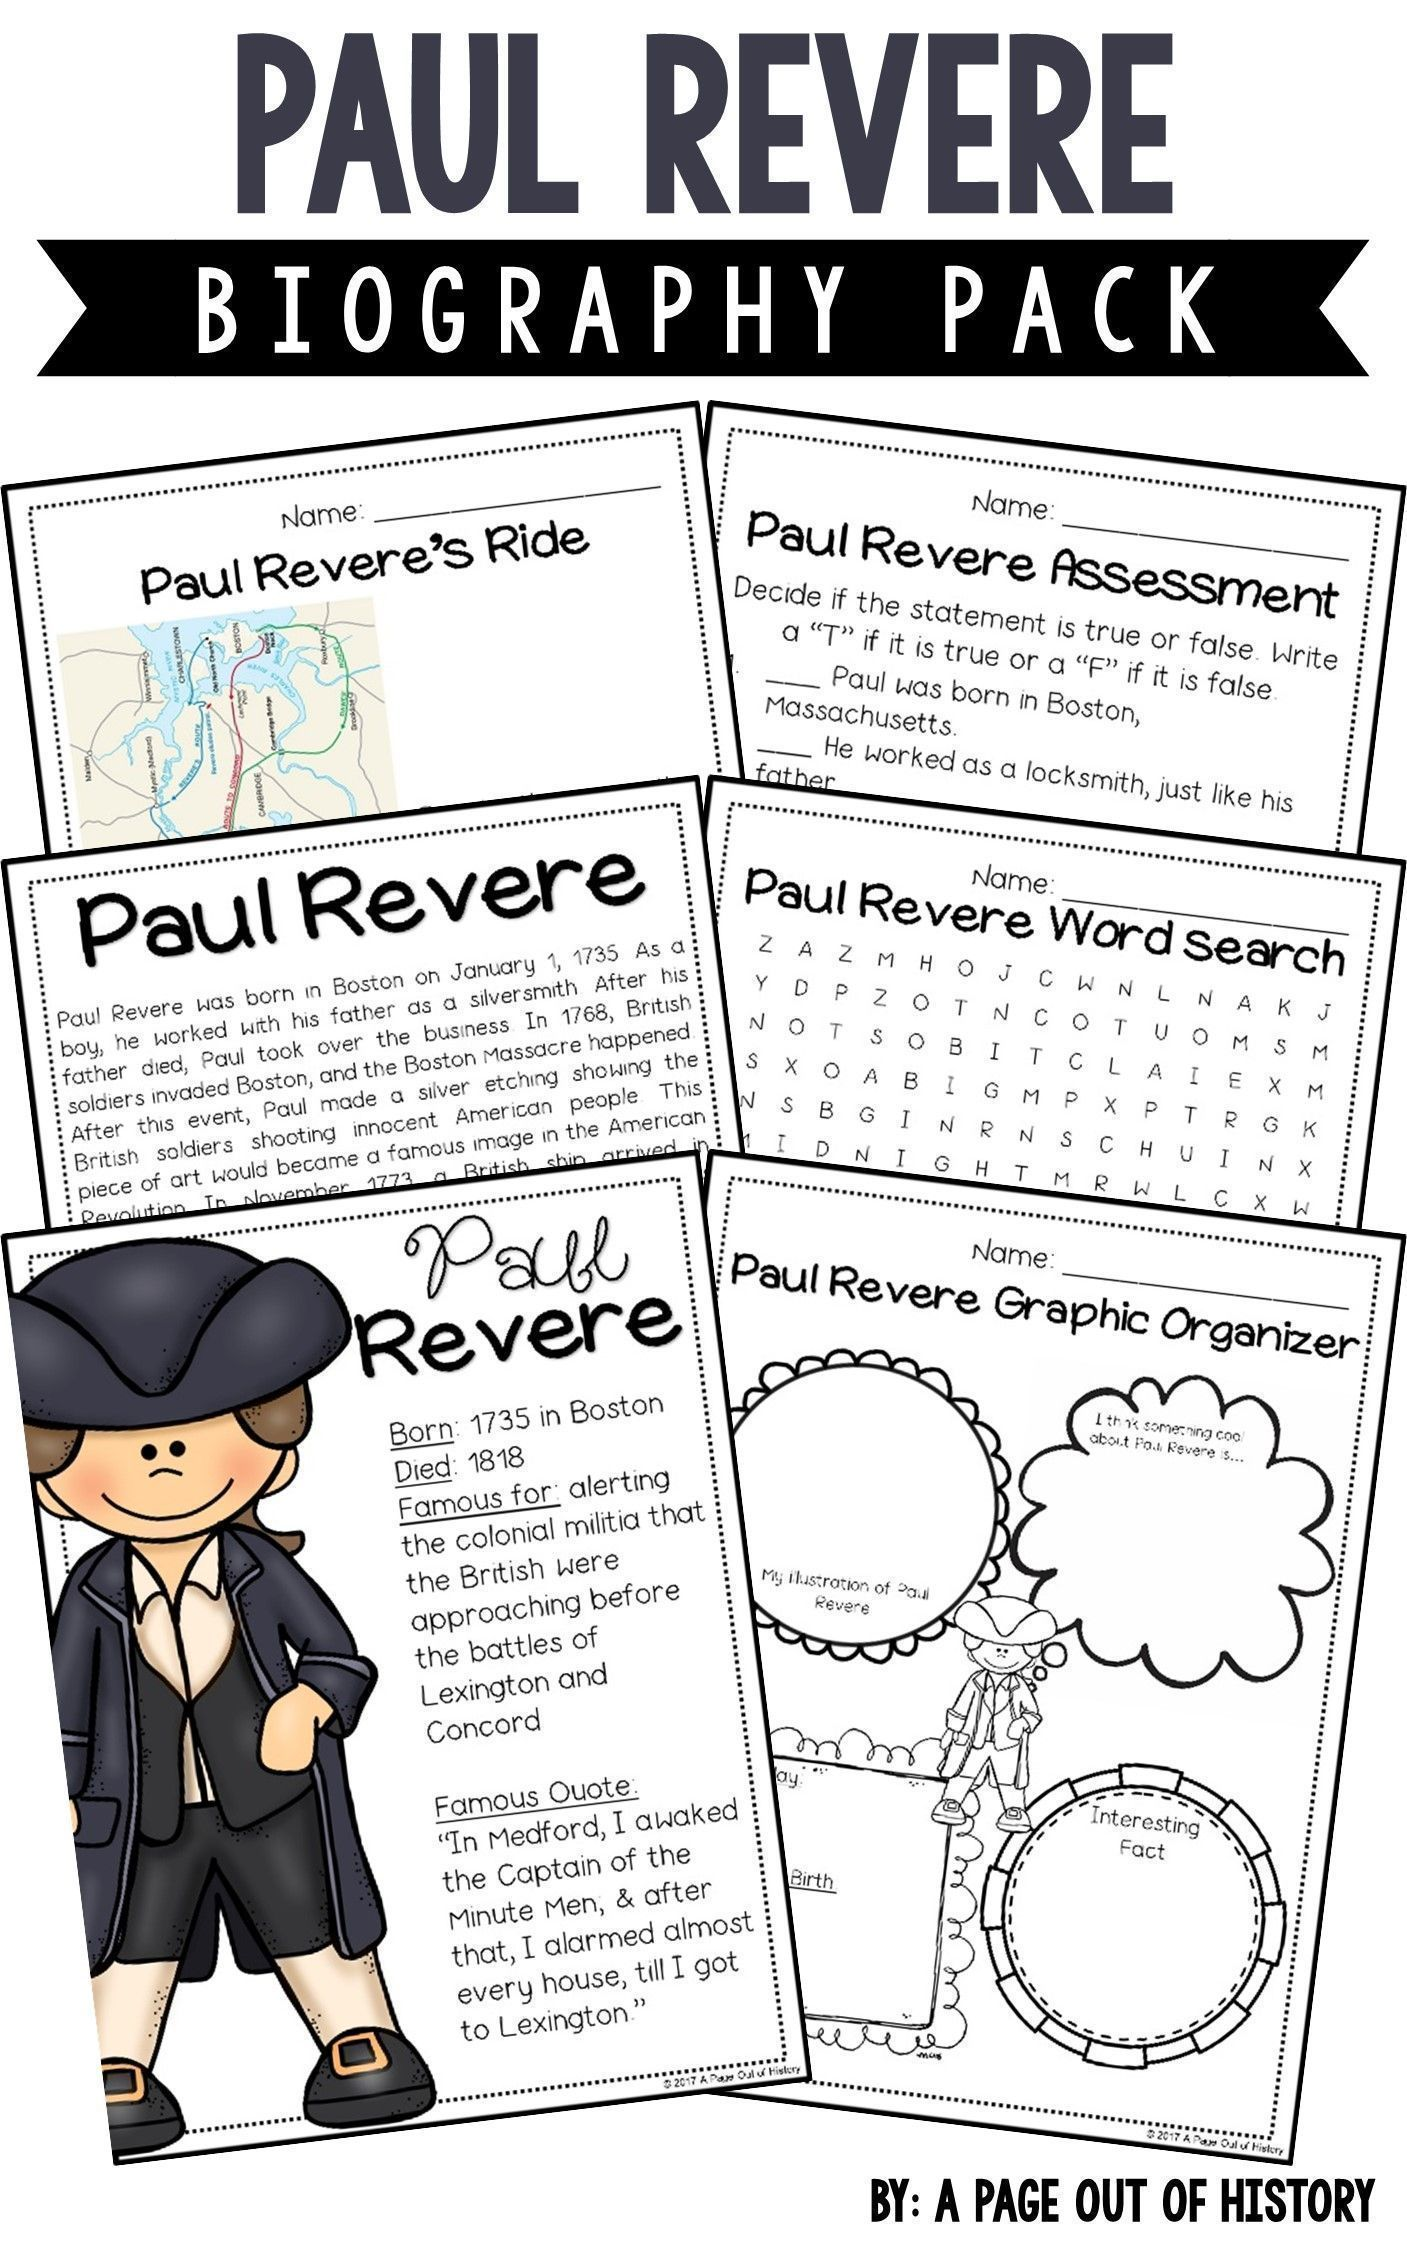 Paul Revere Biography Pack Revolutionary Americans A Page Out Of History Paul Revere Activities Paul Revere Nonfiction Passages